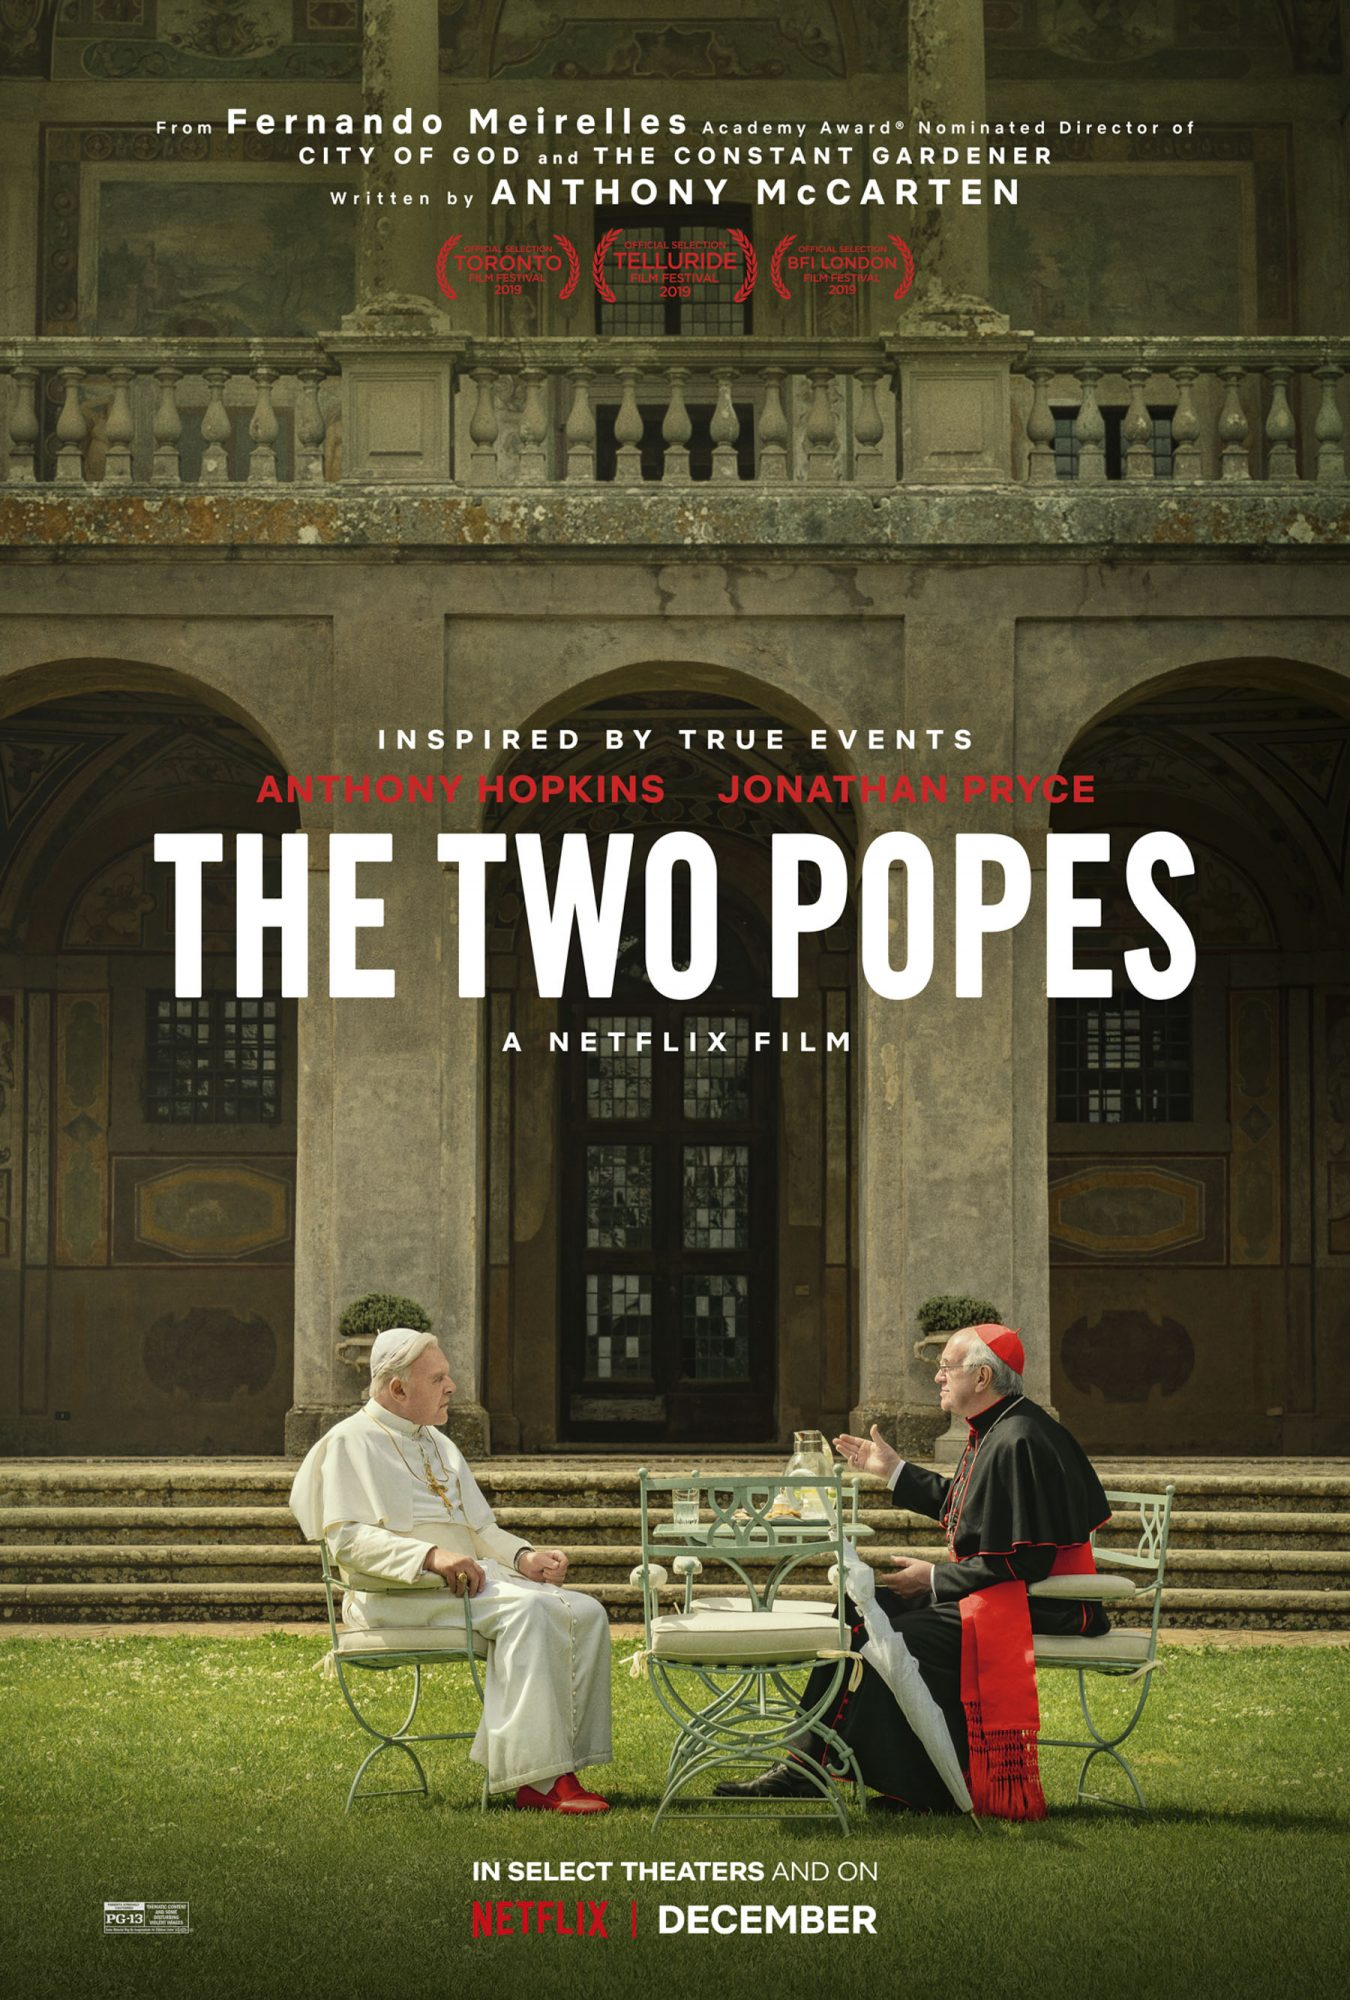 The Two Popes movie poster CR: Netflix